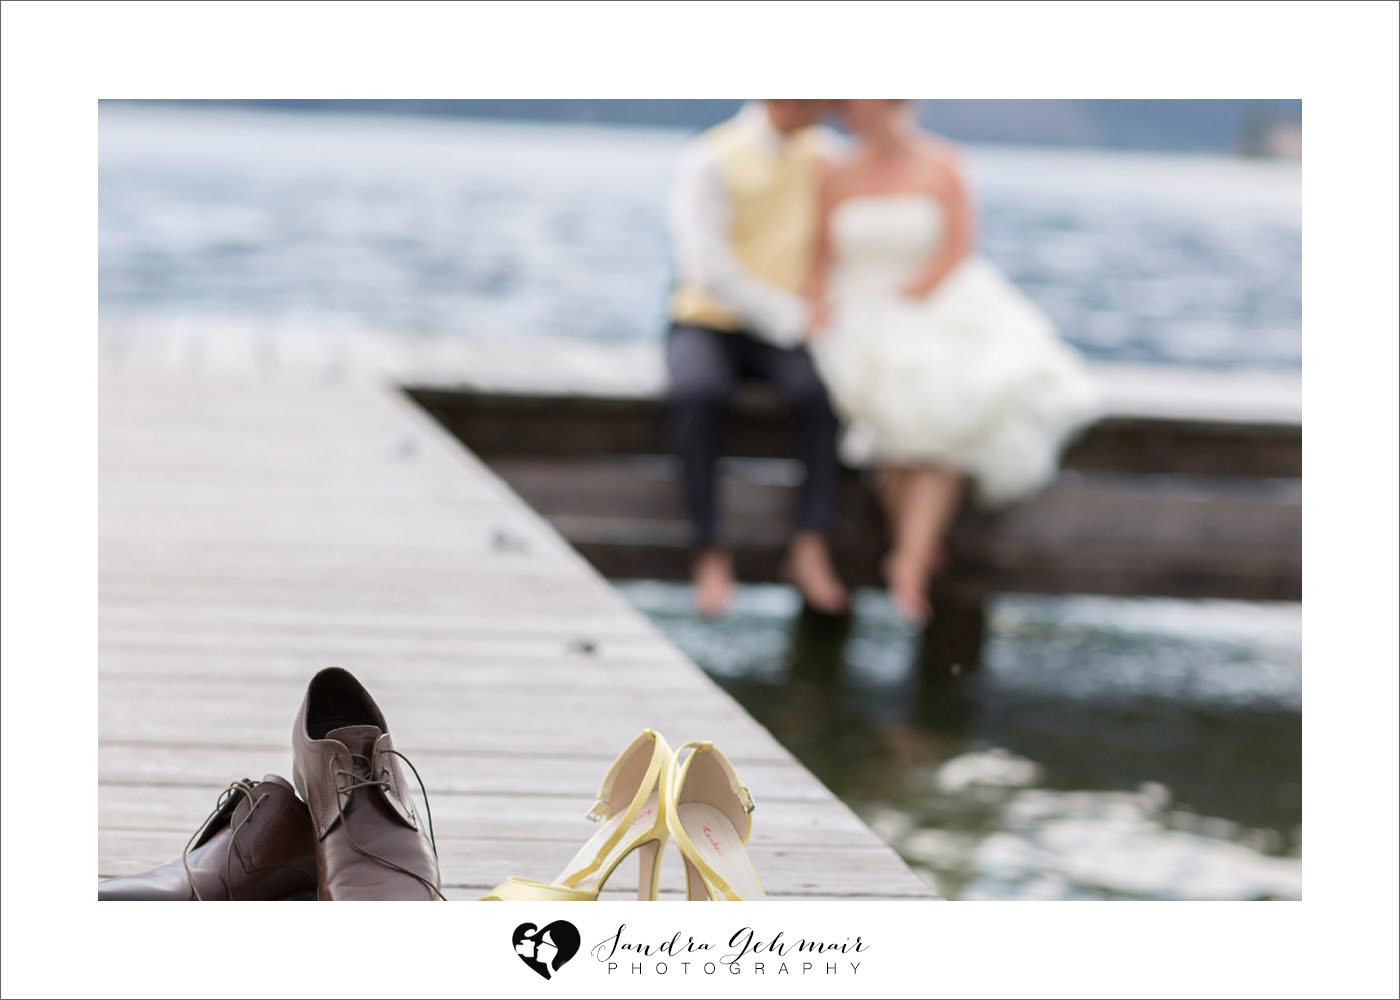 049_heiraten_am_see_spitzvilla_sandra_gehmair